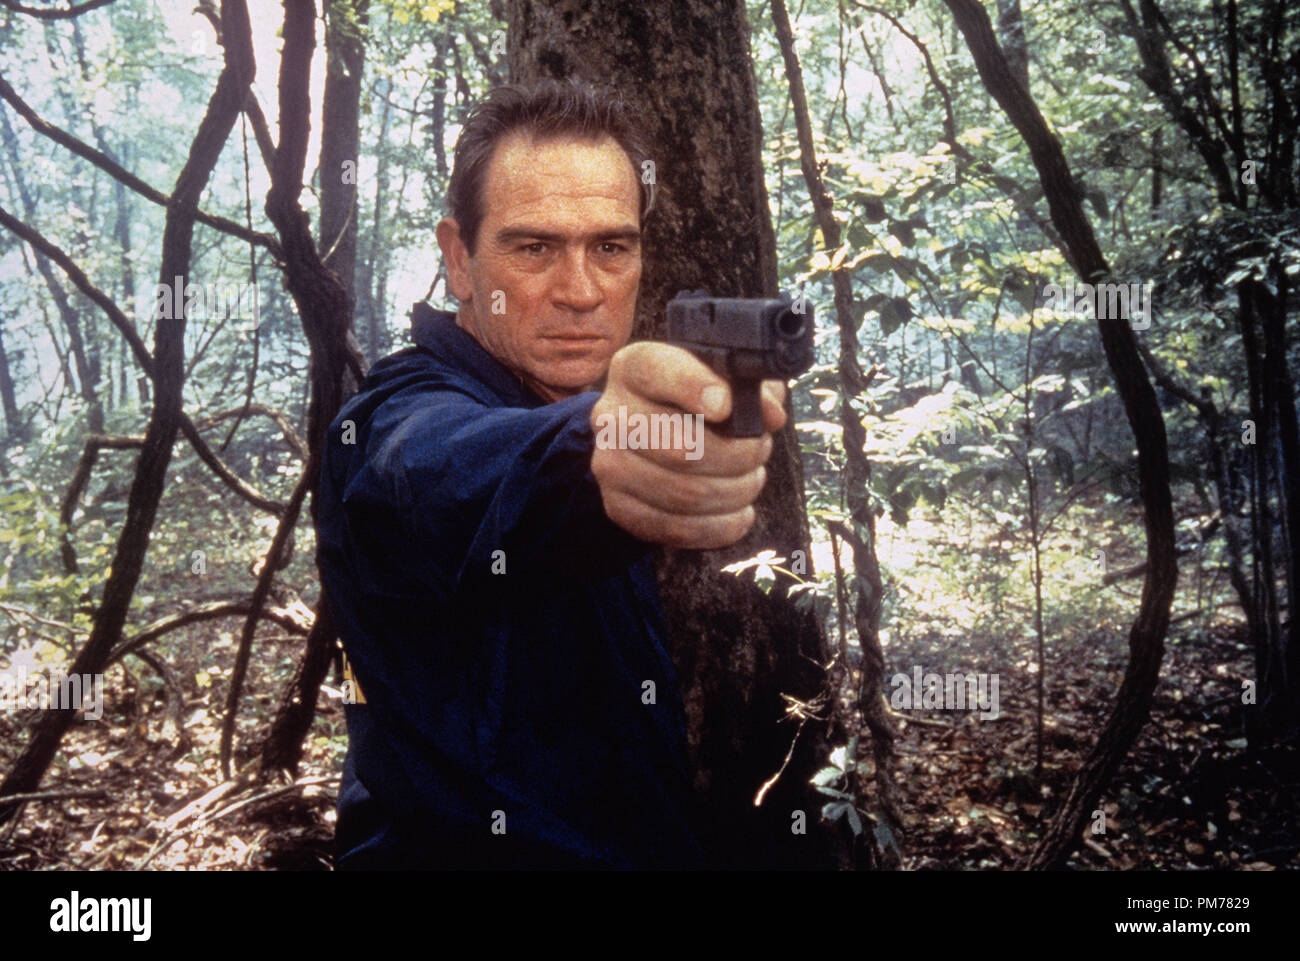 Tommy Lee Jones U S Marshals High Resolution Stock Photography And Images Alamy